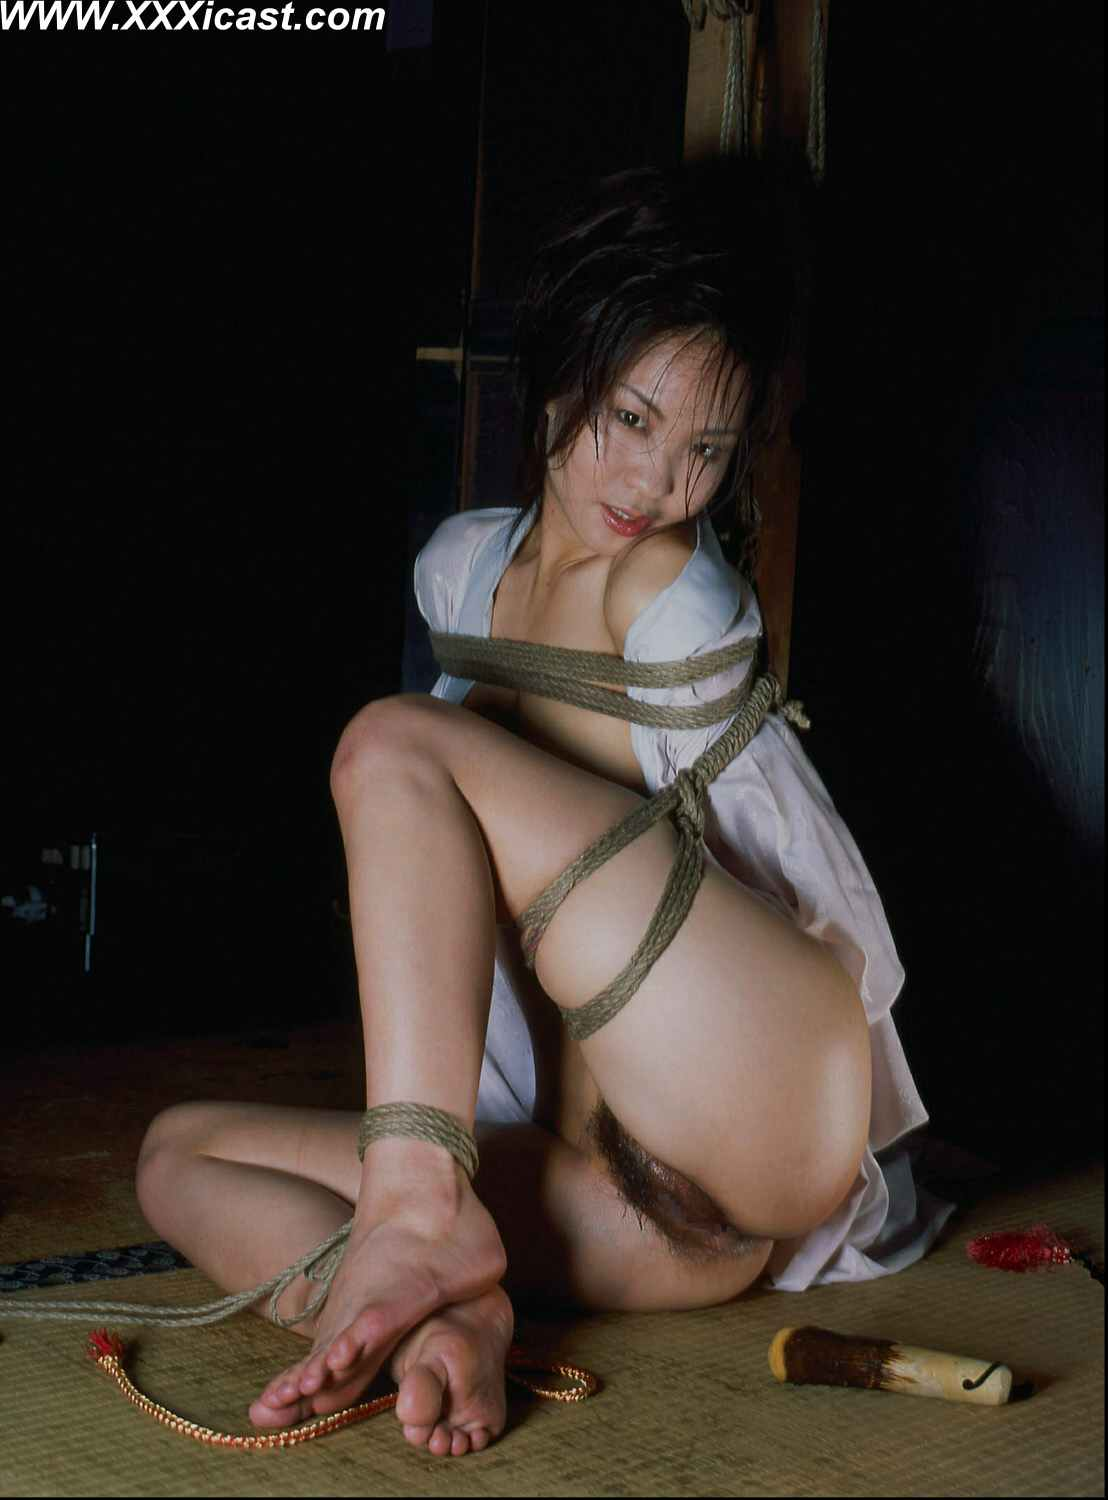 Ass Asian girl rope bondage seem